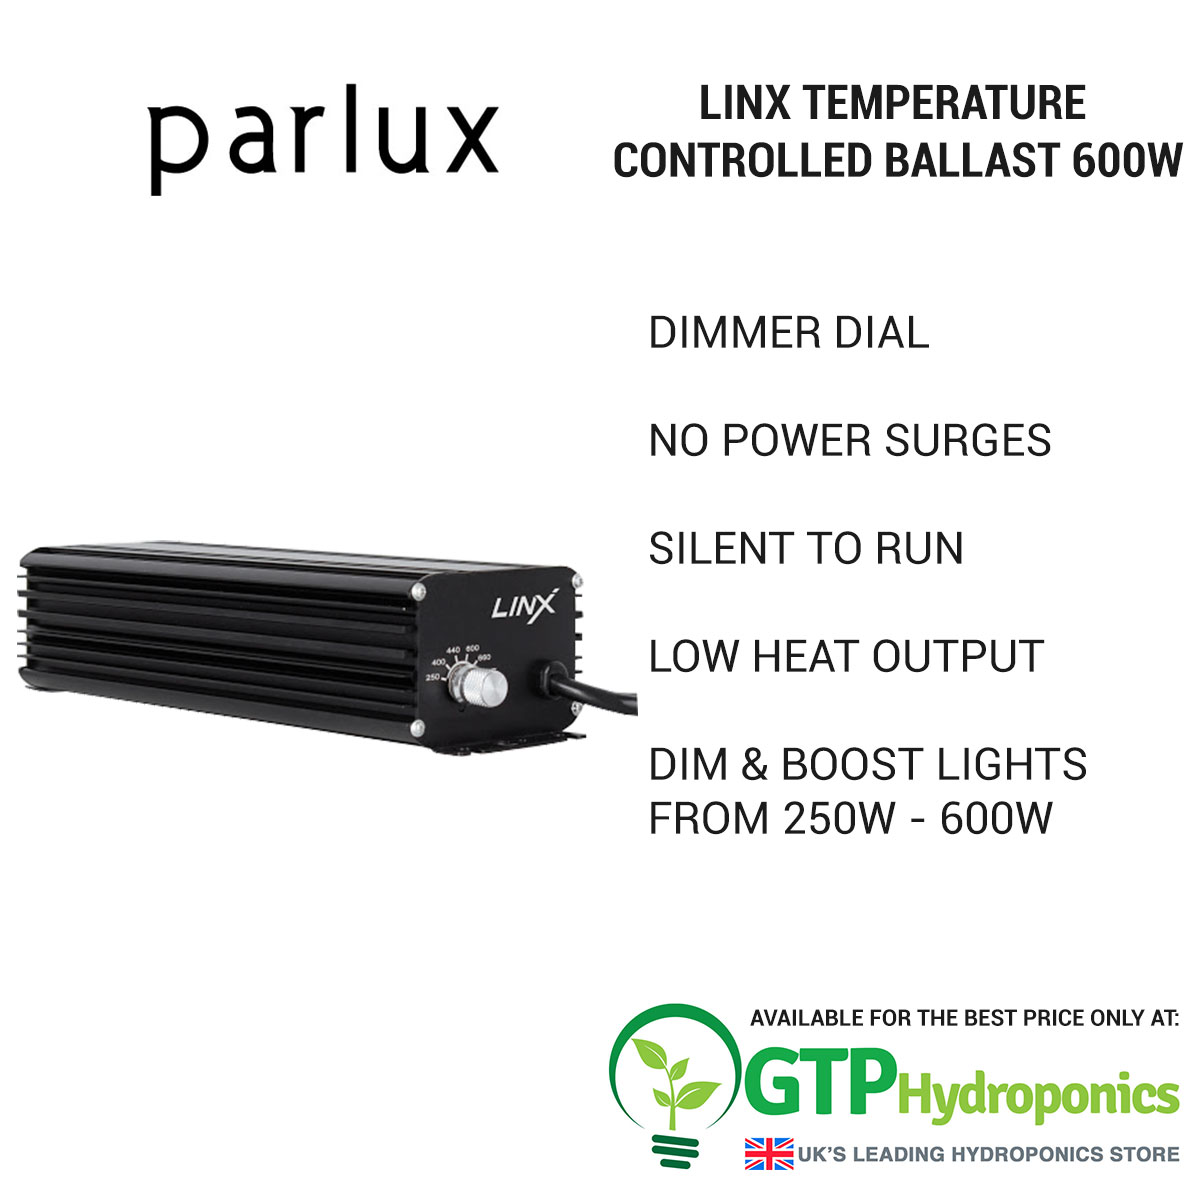 Linx Temperature Controlled Ballast 600w overview